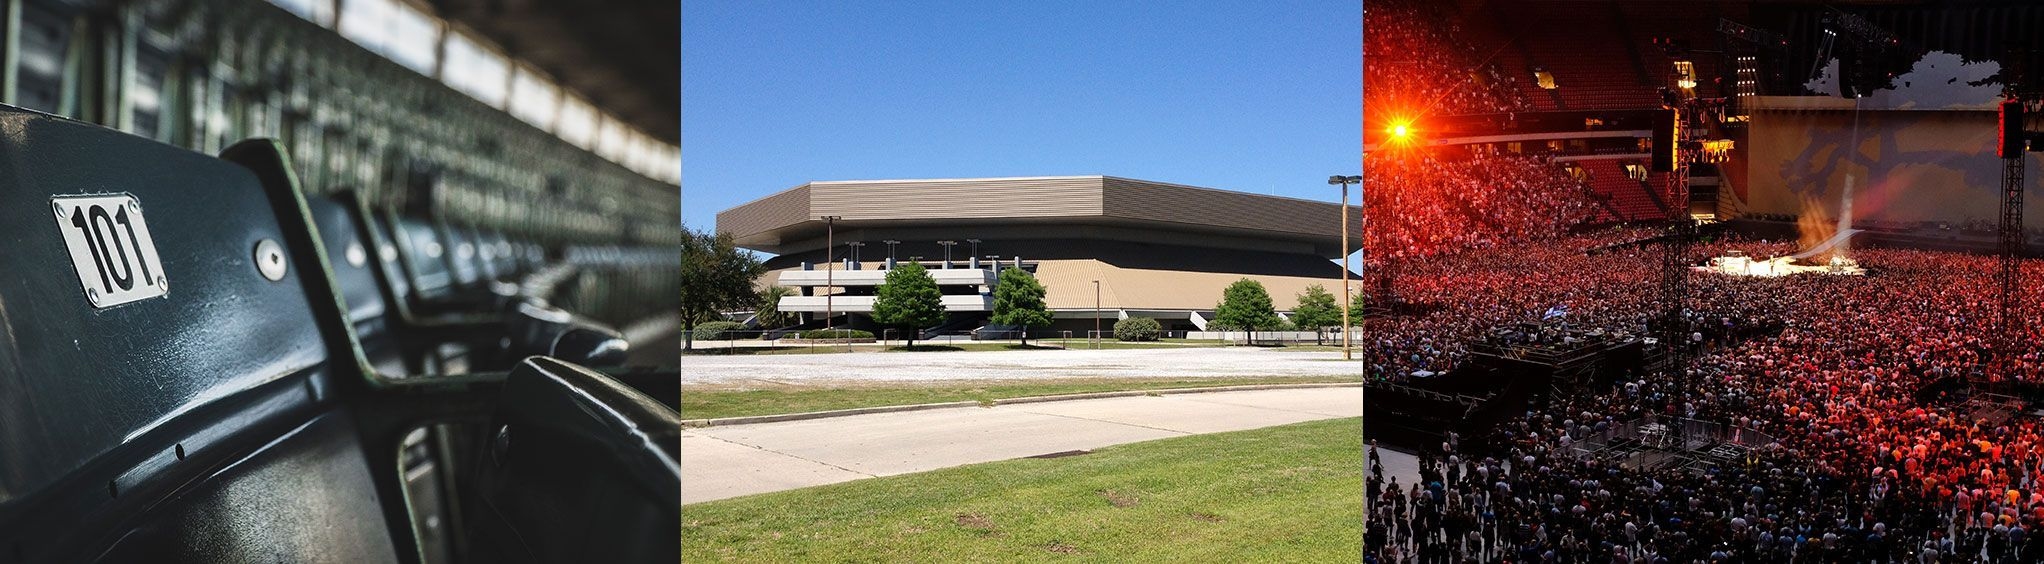 UNO Lakefront Arena in New Orleans